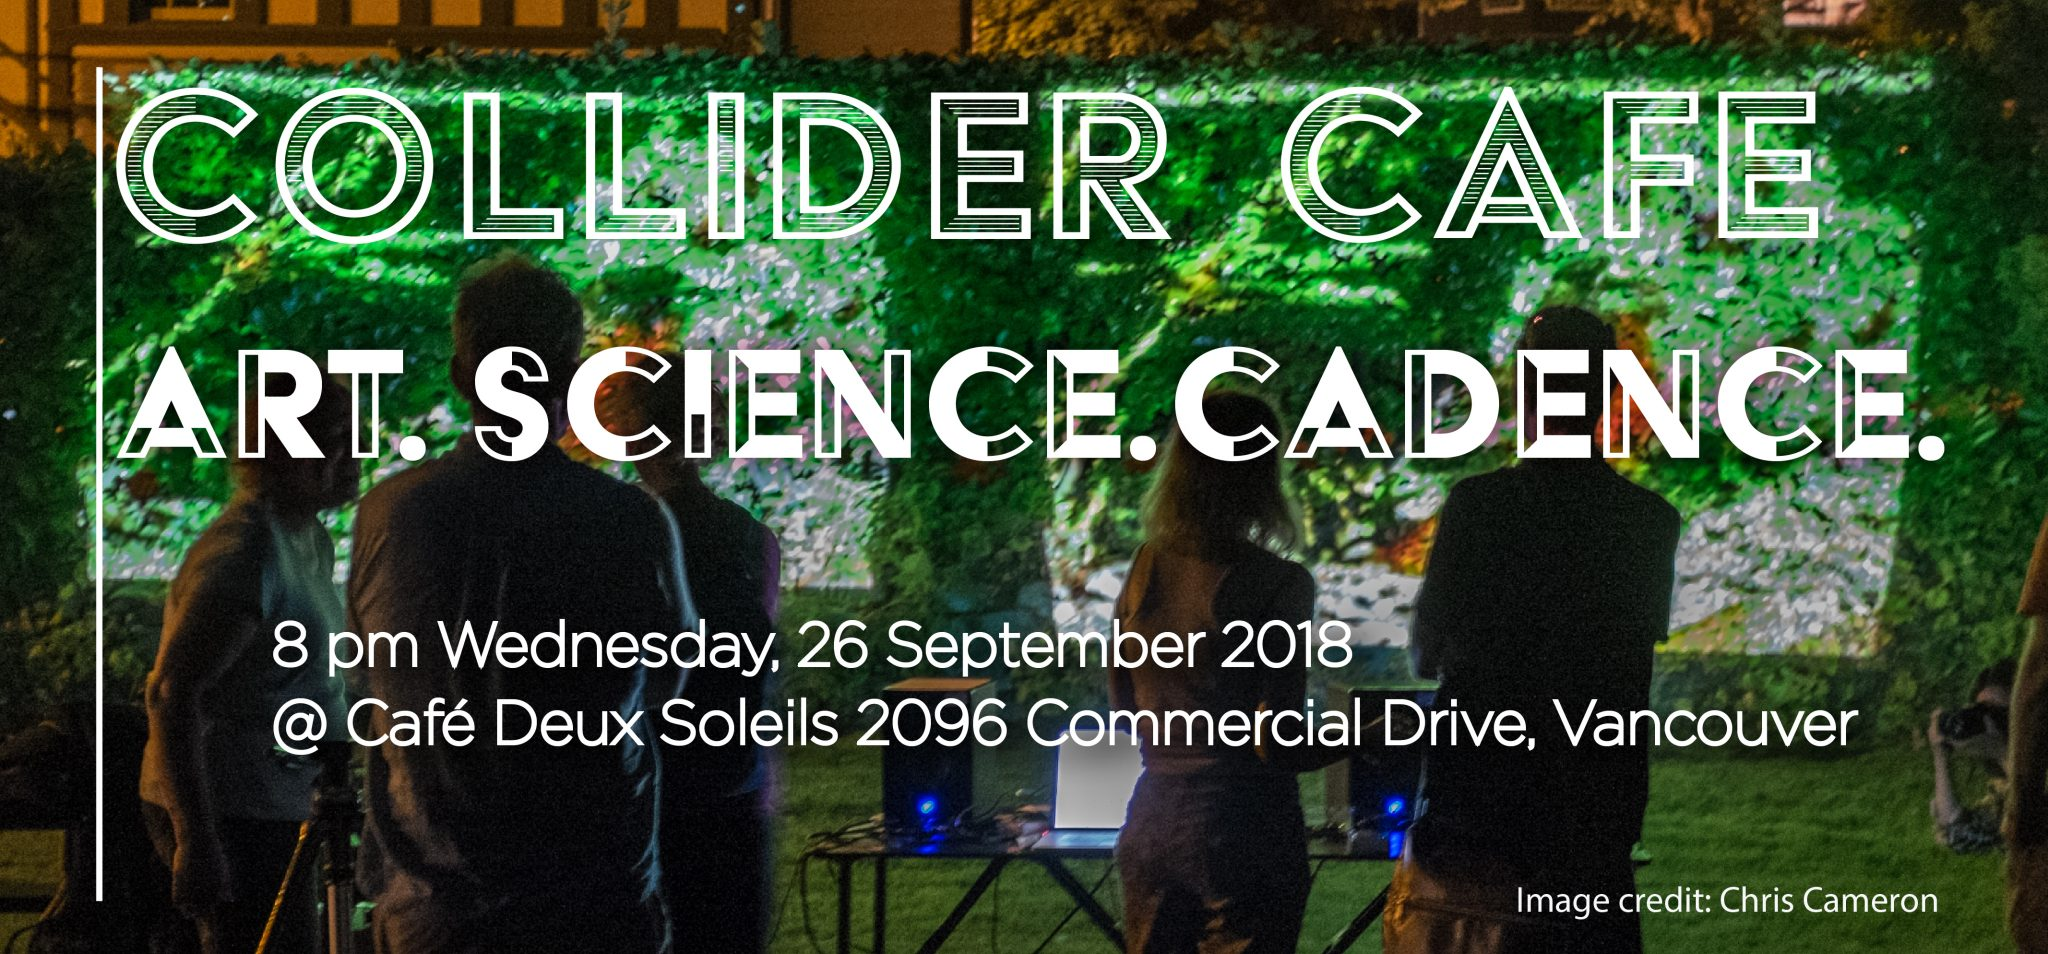 Collider Cafe: Art. Science. Cadence.